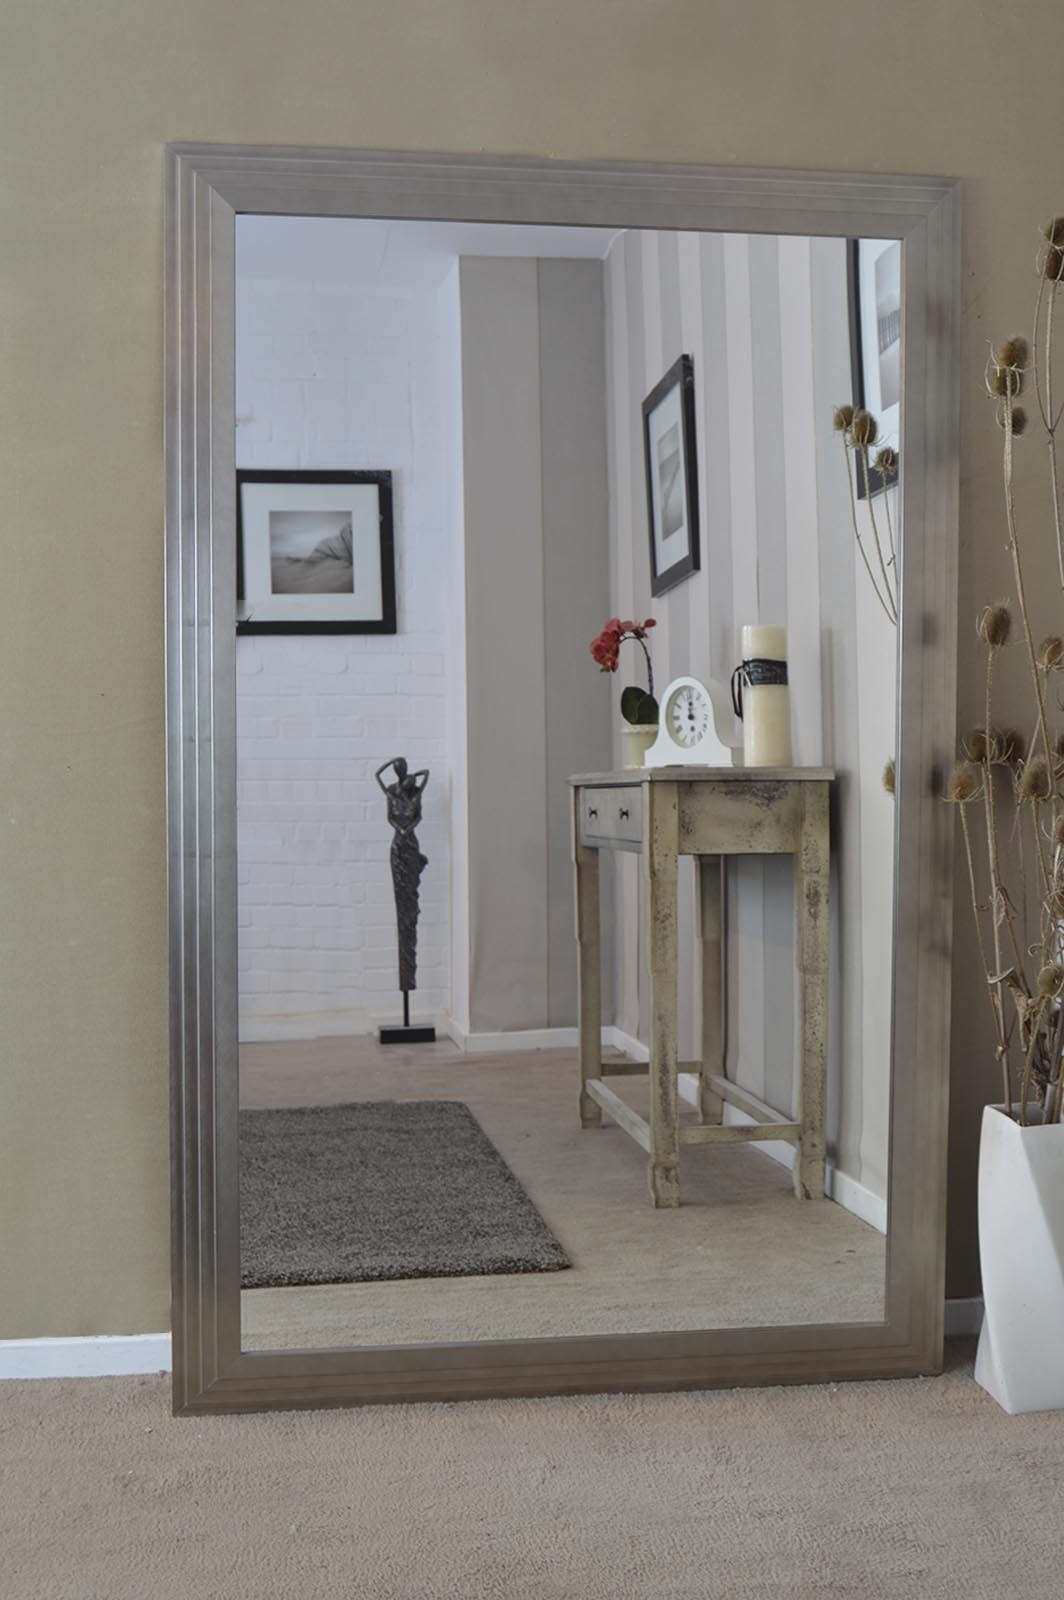 Mirroroutlet Shop For Large Mirrors Wall Mirrors Free Delivery Pertaining To Big Mirrors (View 2 of 15)